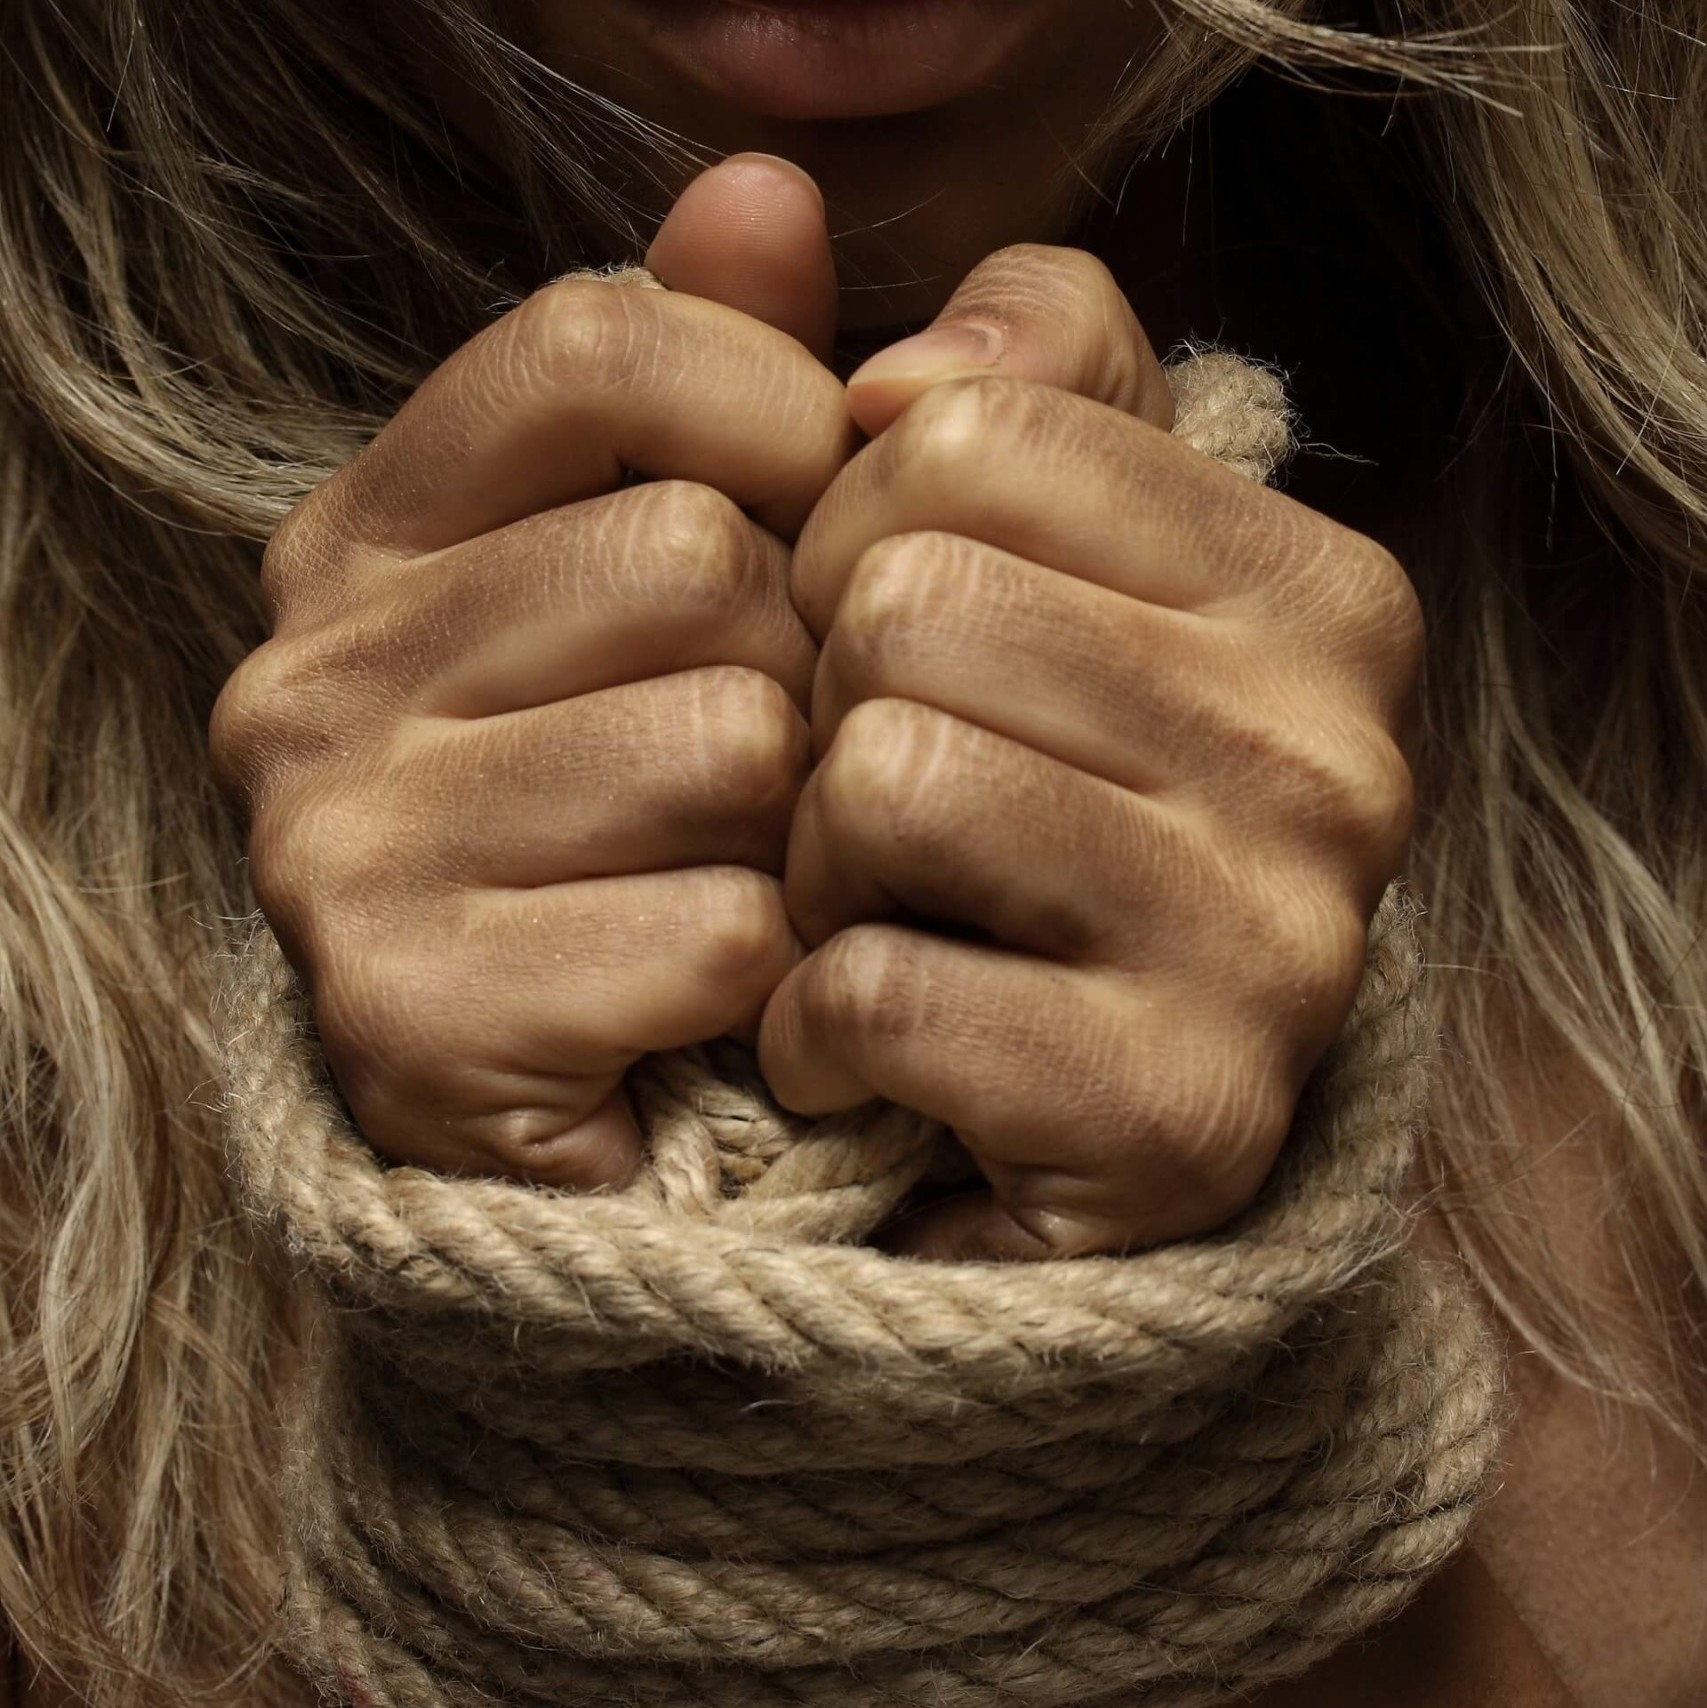 Understand the Significance of Human Trafficking Awareness Month